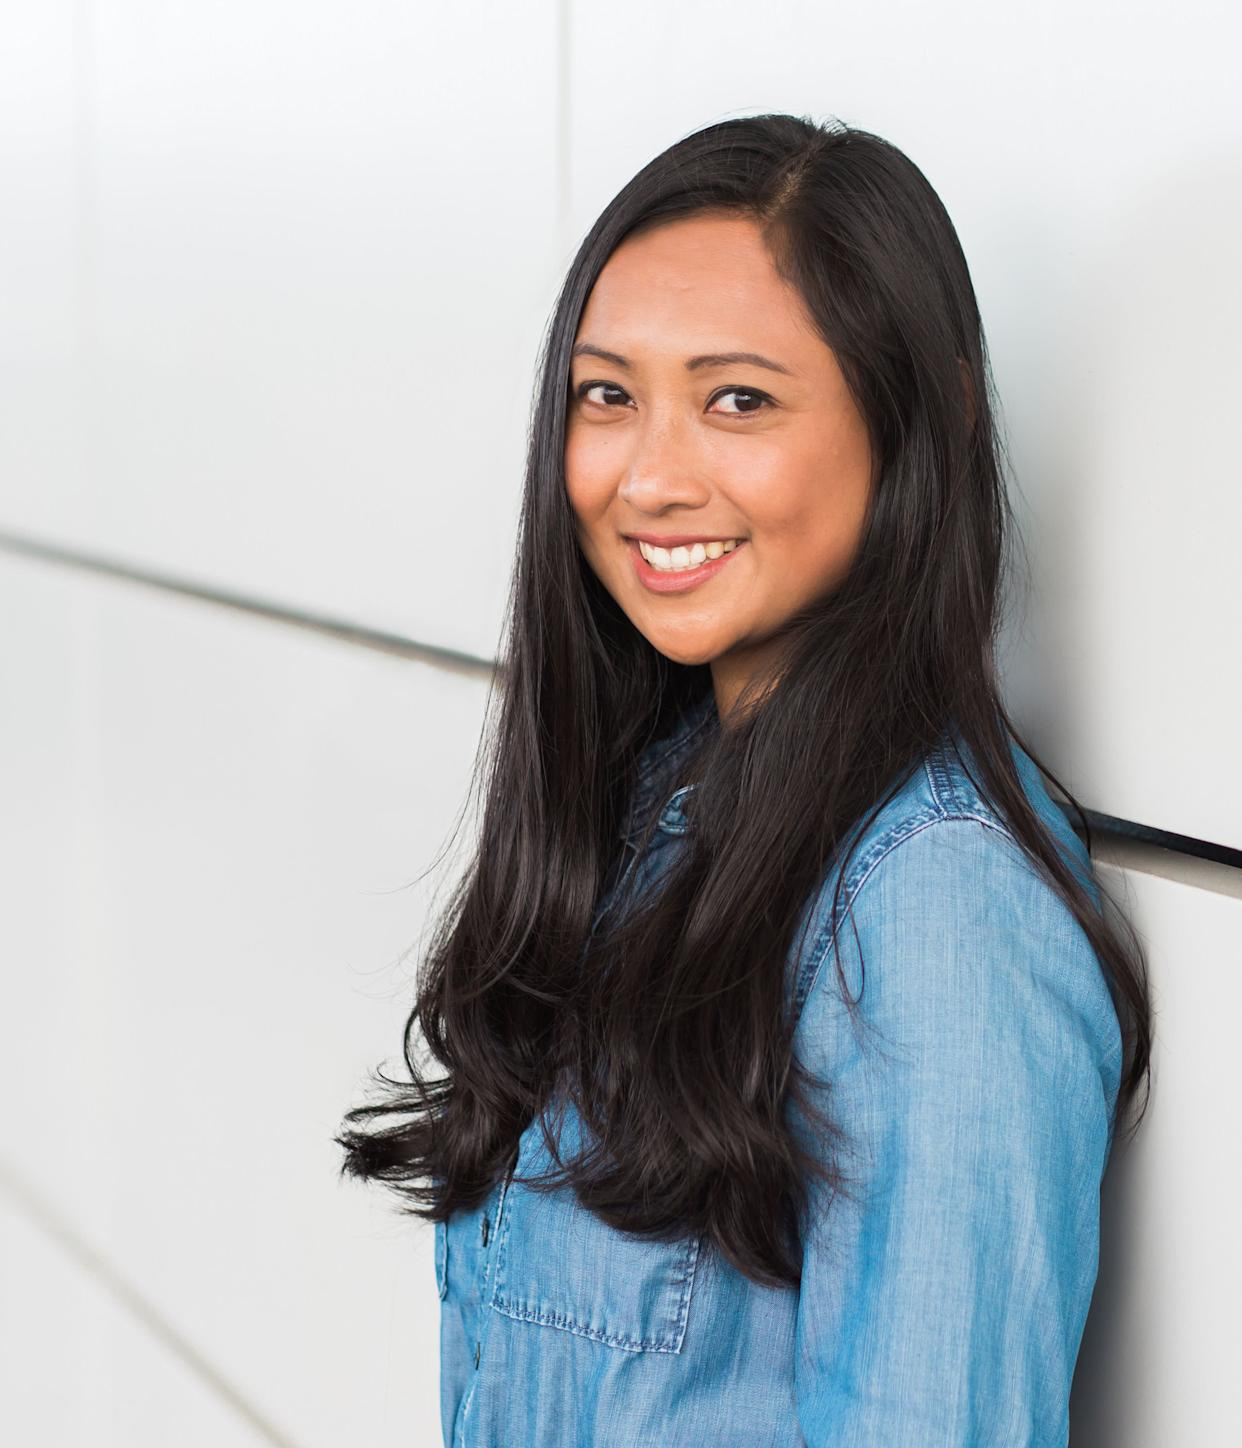 Rina Mae Acosta, who moved to the Netherlands from the U.S., benefited from the far more generous Dutch maternity policies. (Photo: Elma Coetzee)